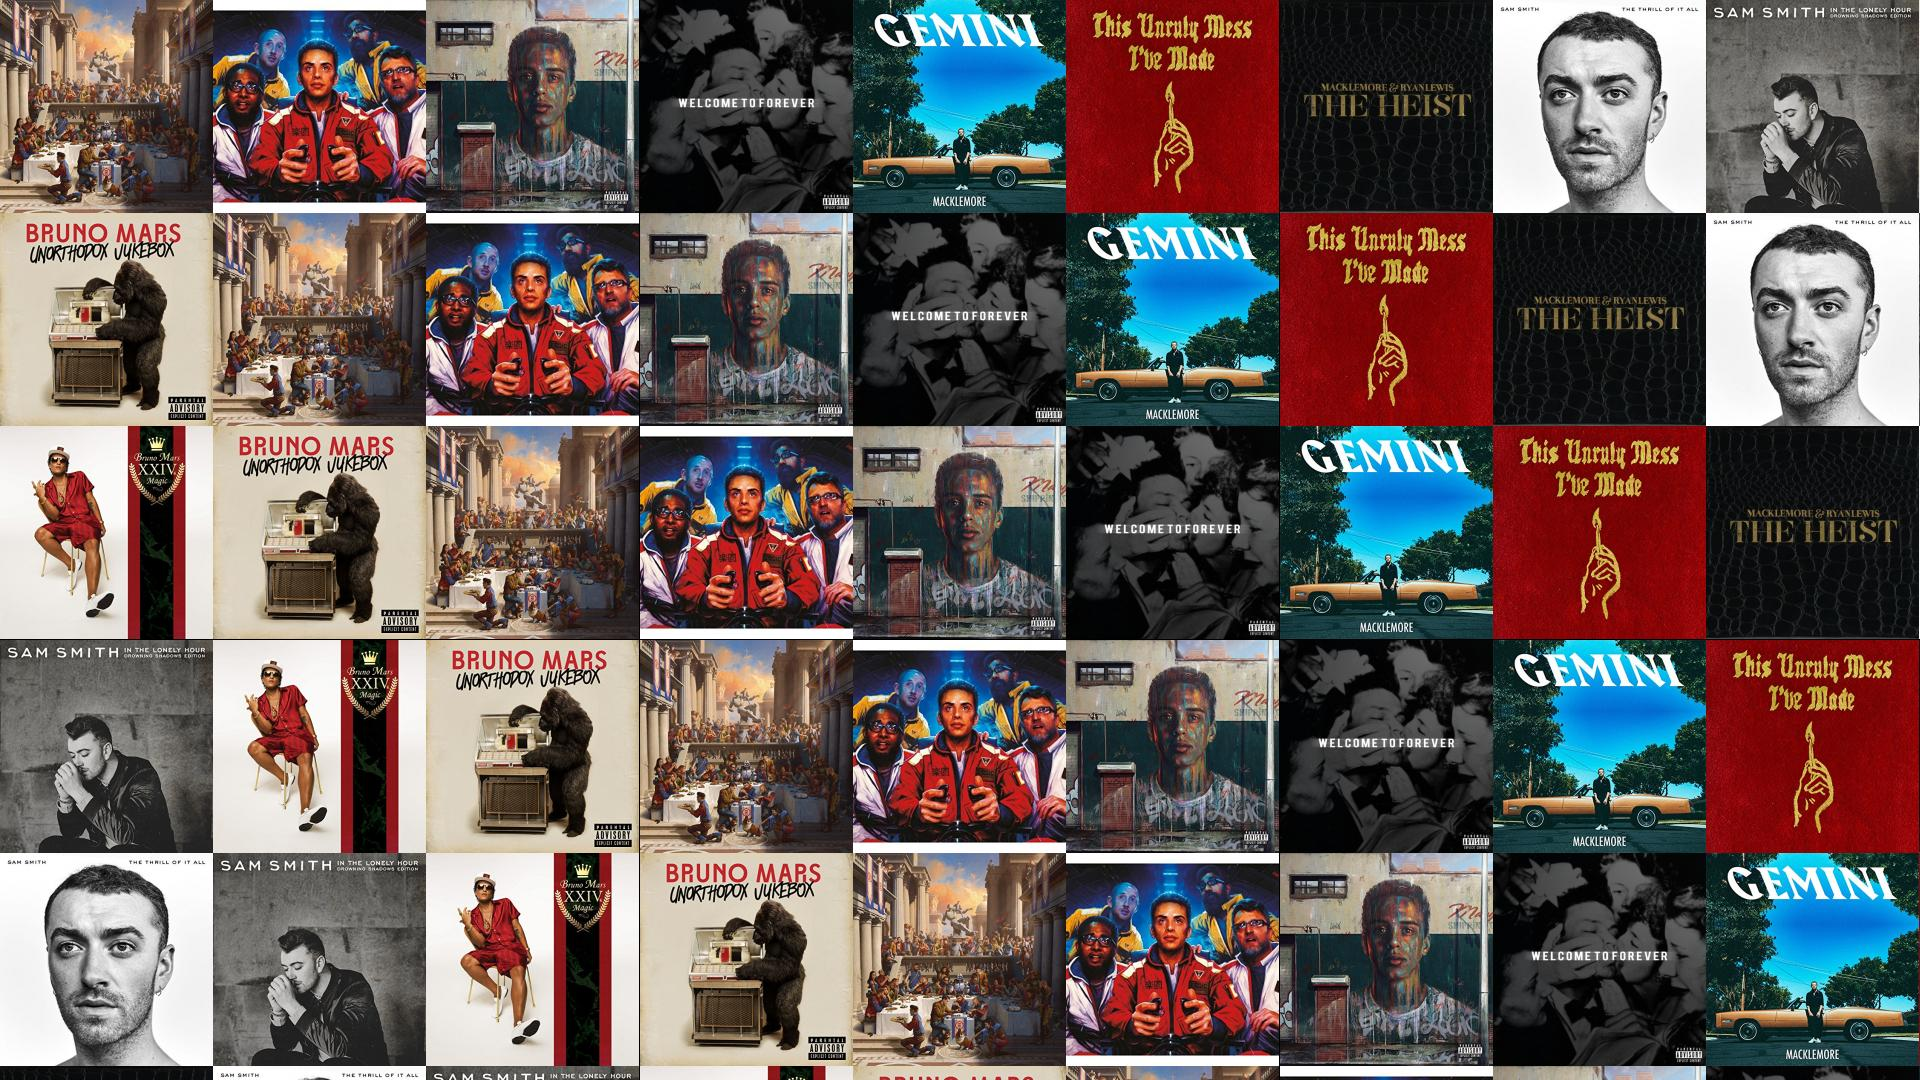 this unruly mess ive made album download